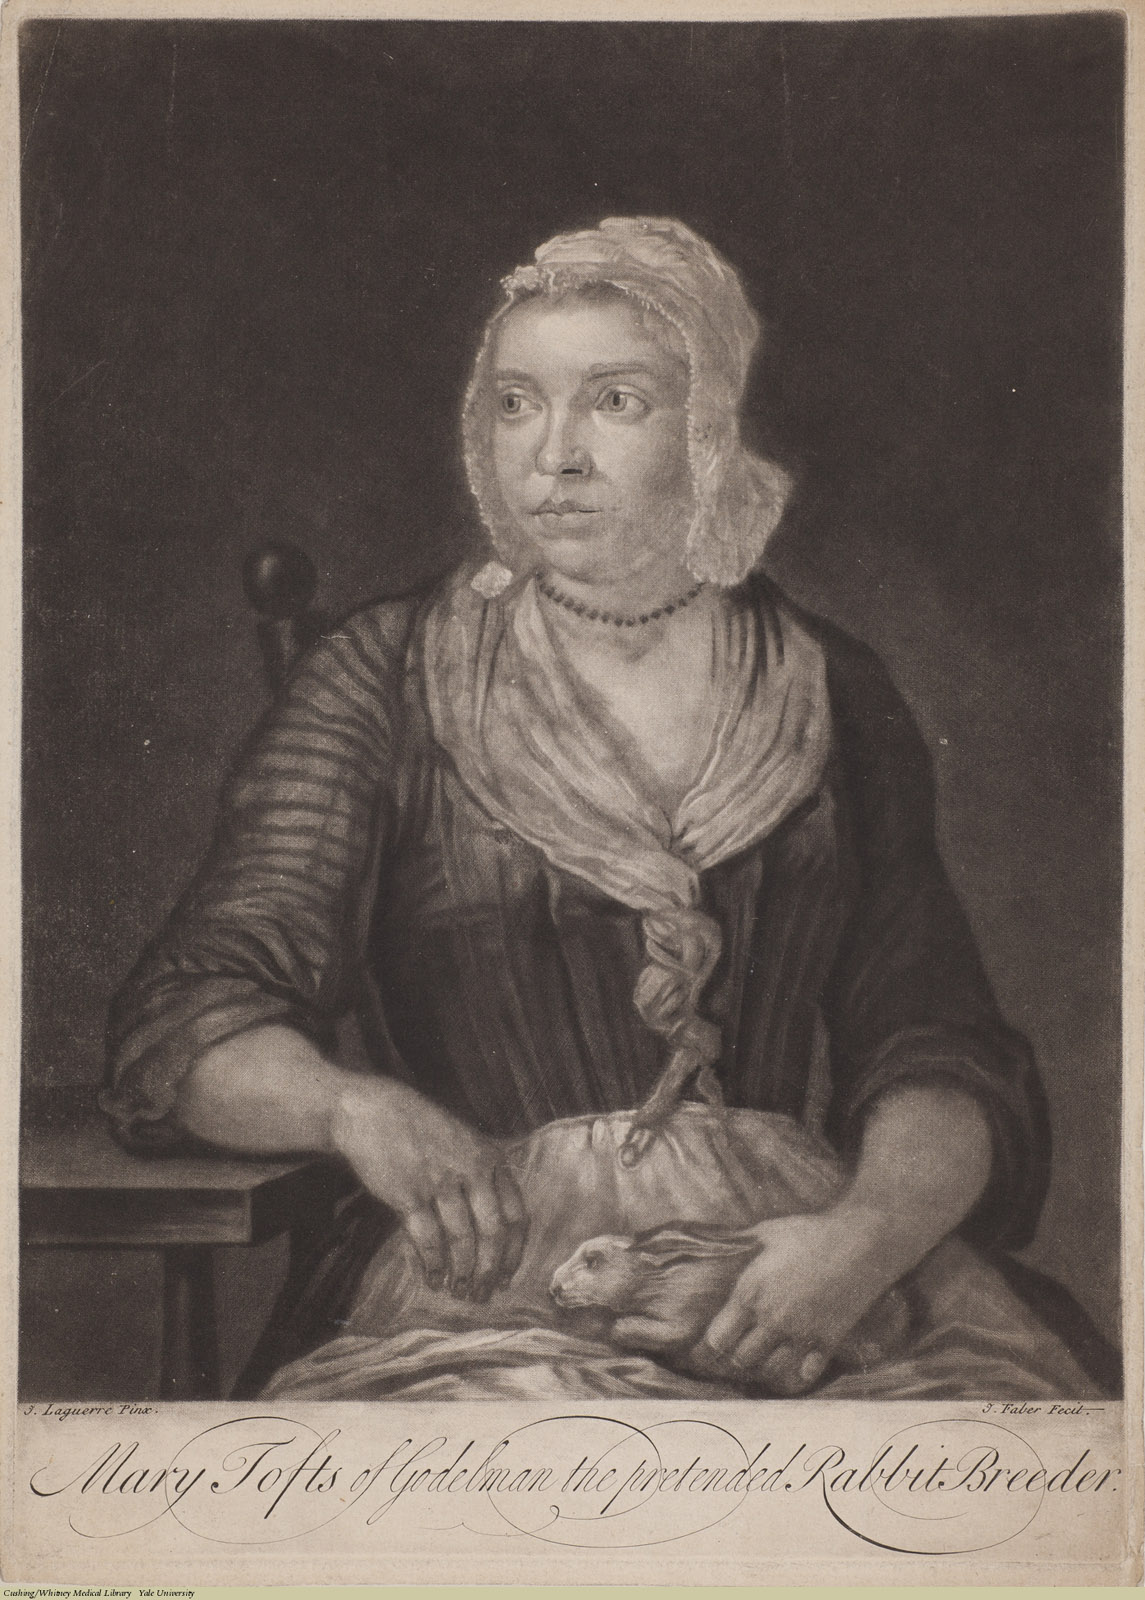 Mary Tofts of Godelman the pretended Rabbit Breeder, mezzotint, John Laguerre, c. 1726.